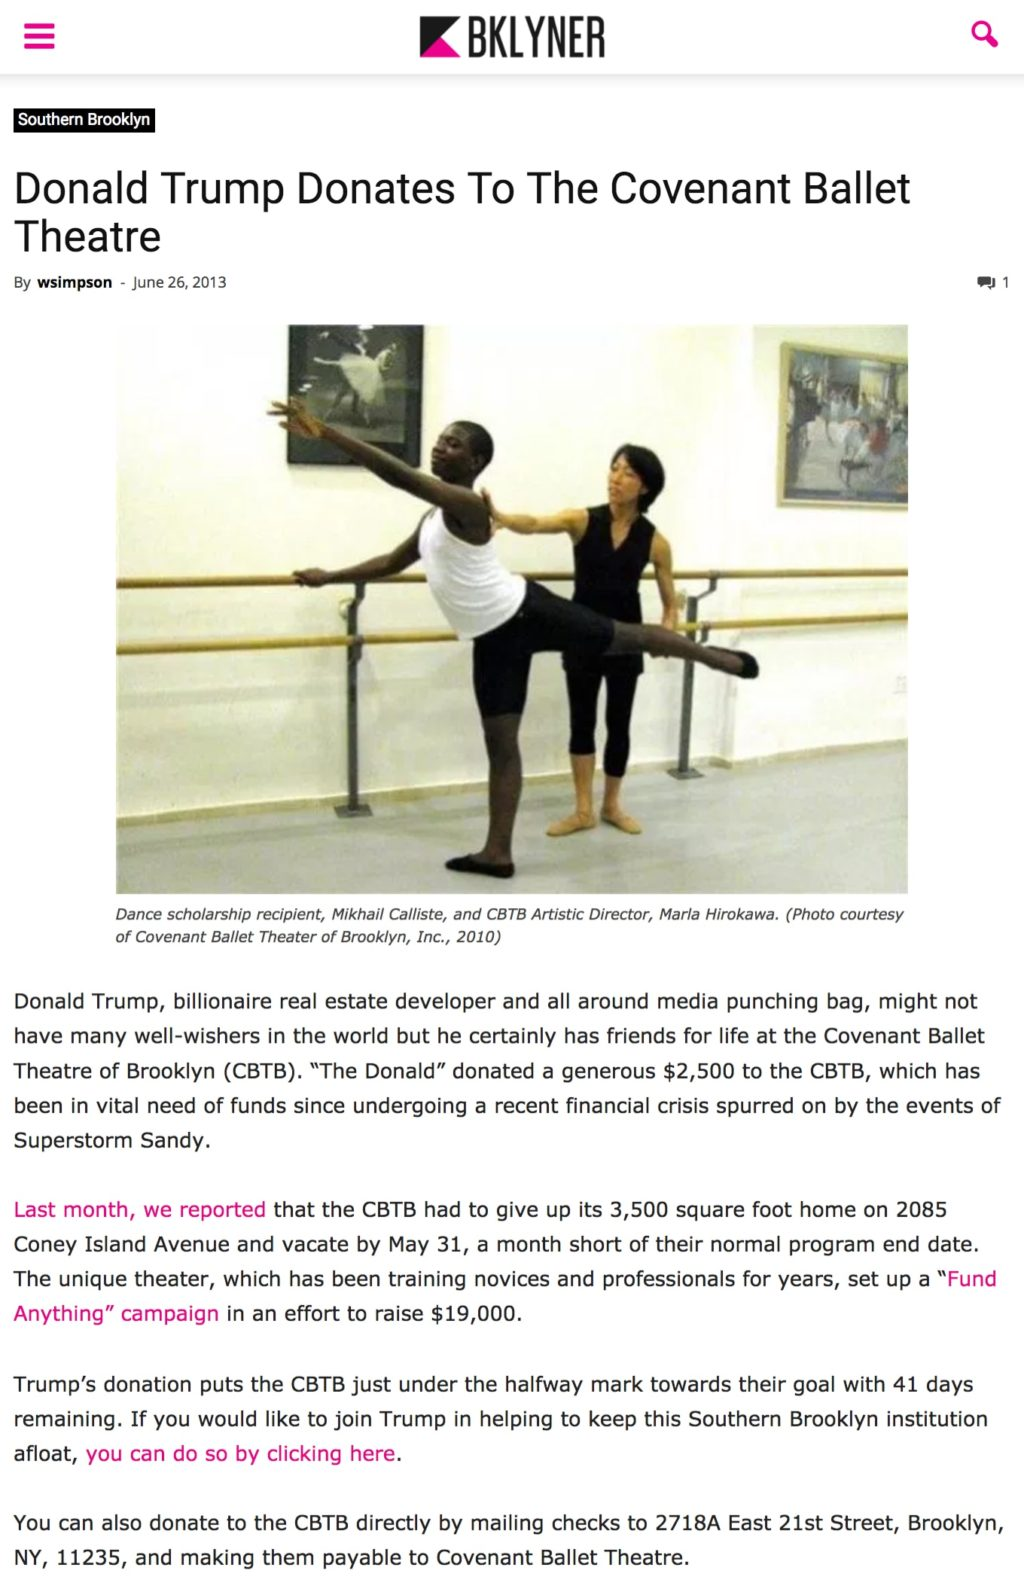 Donald Trump Donates To The Covenant Ballet Theatre